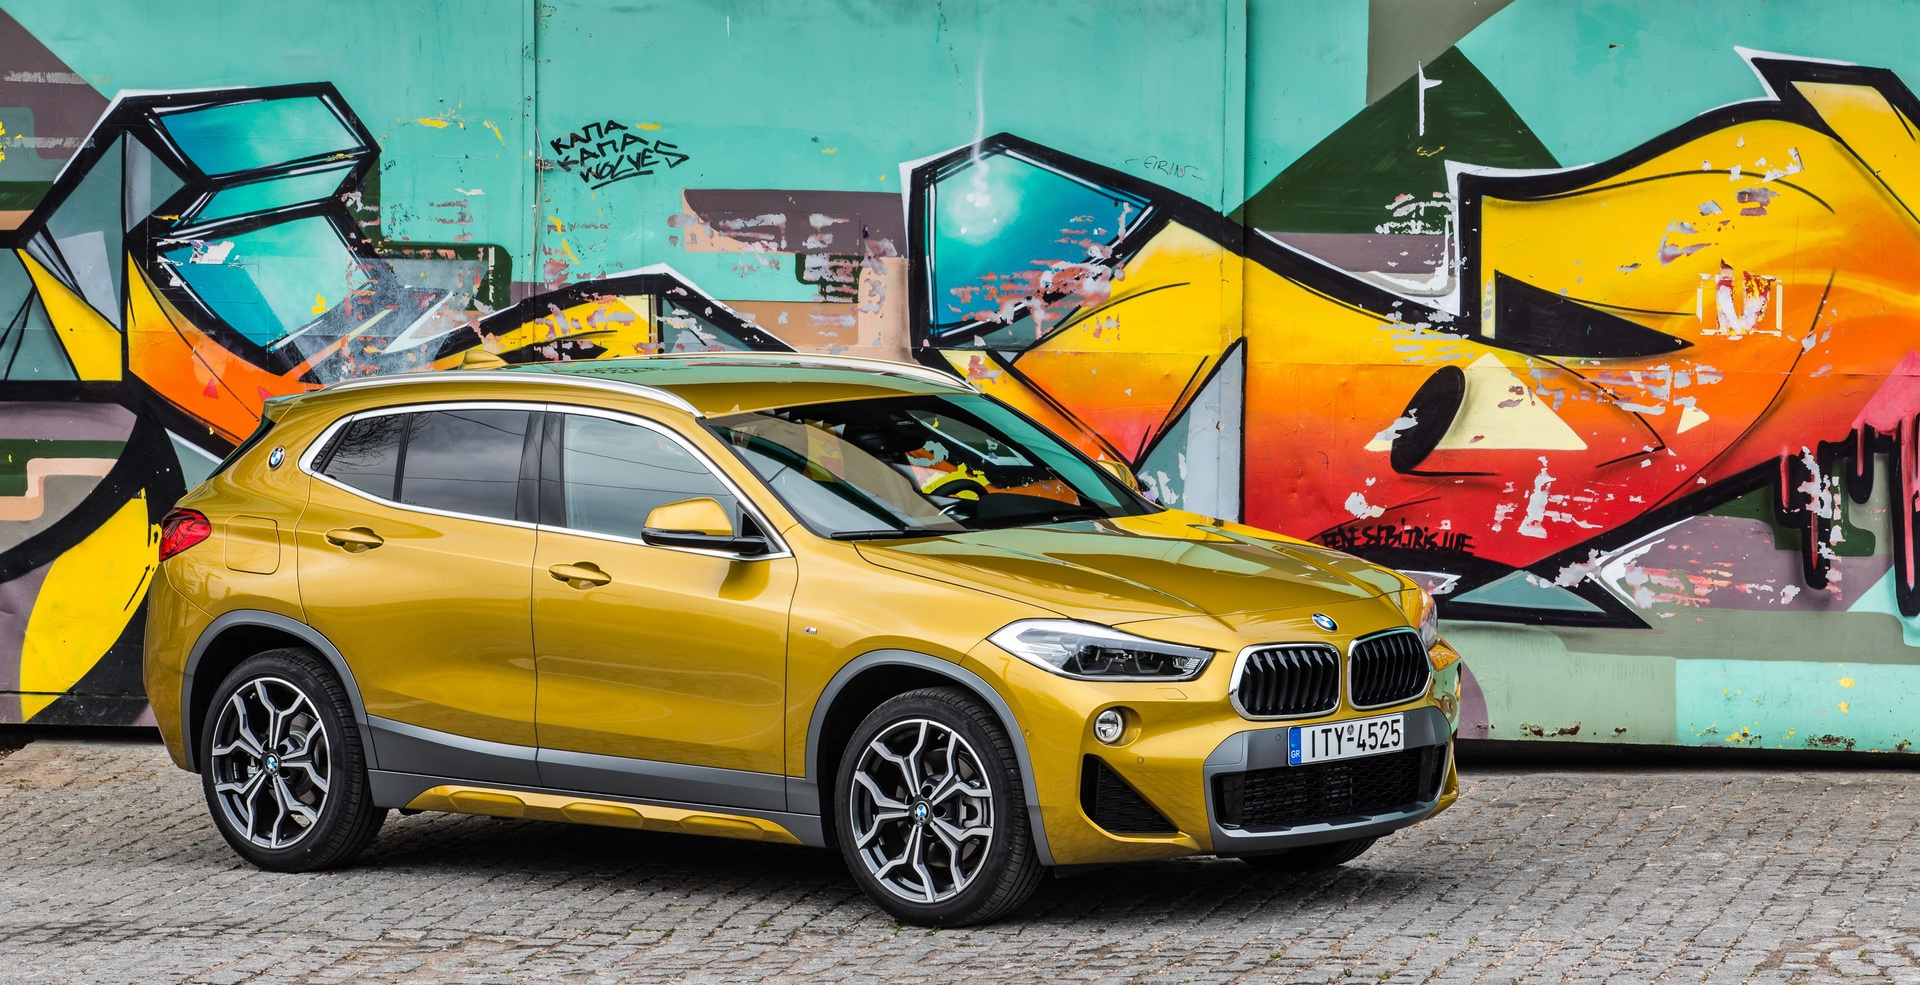 BMW_X2_Greek_presskit_0051